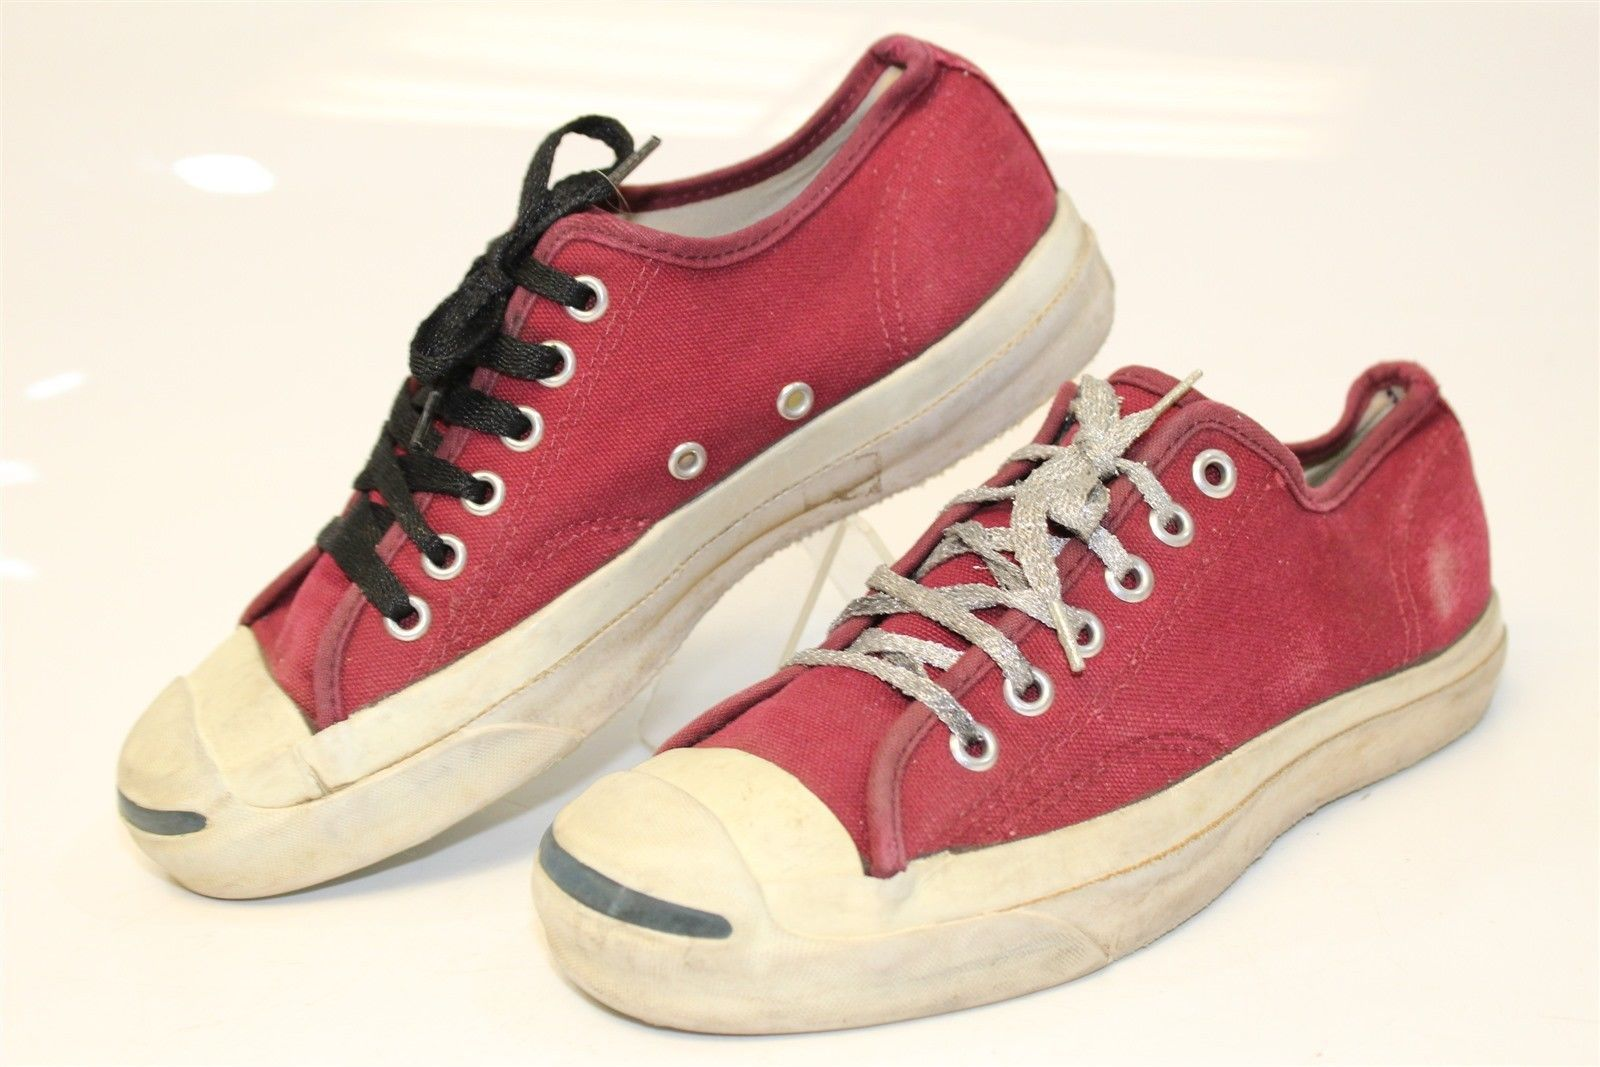 34d9f323cade Converse Jack Purcell Vintage USA MADE Men s 5.5 Low Top Sneakers Shoes eg